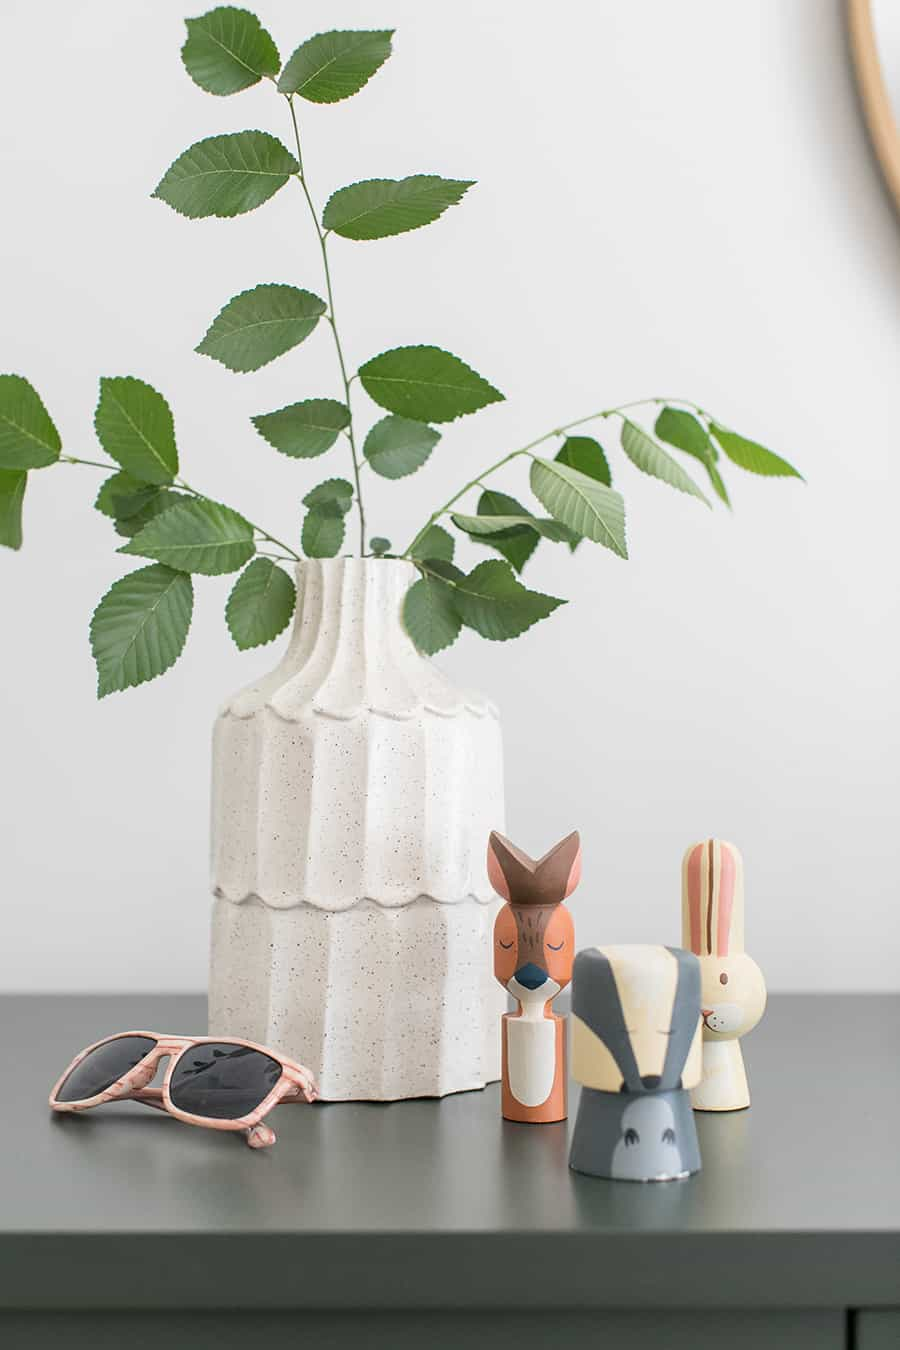 Ferns in a vase with wooden critters